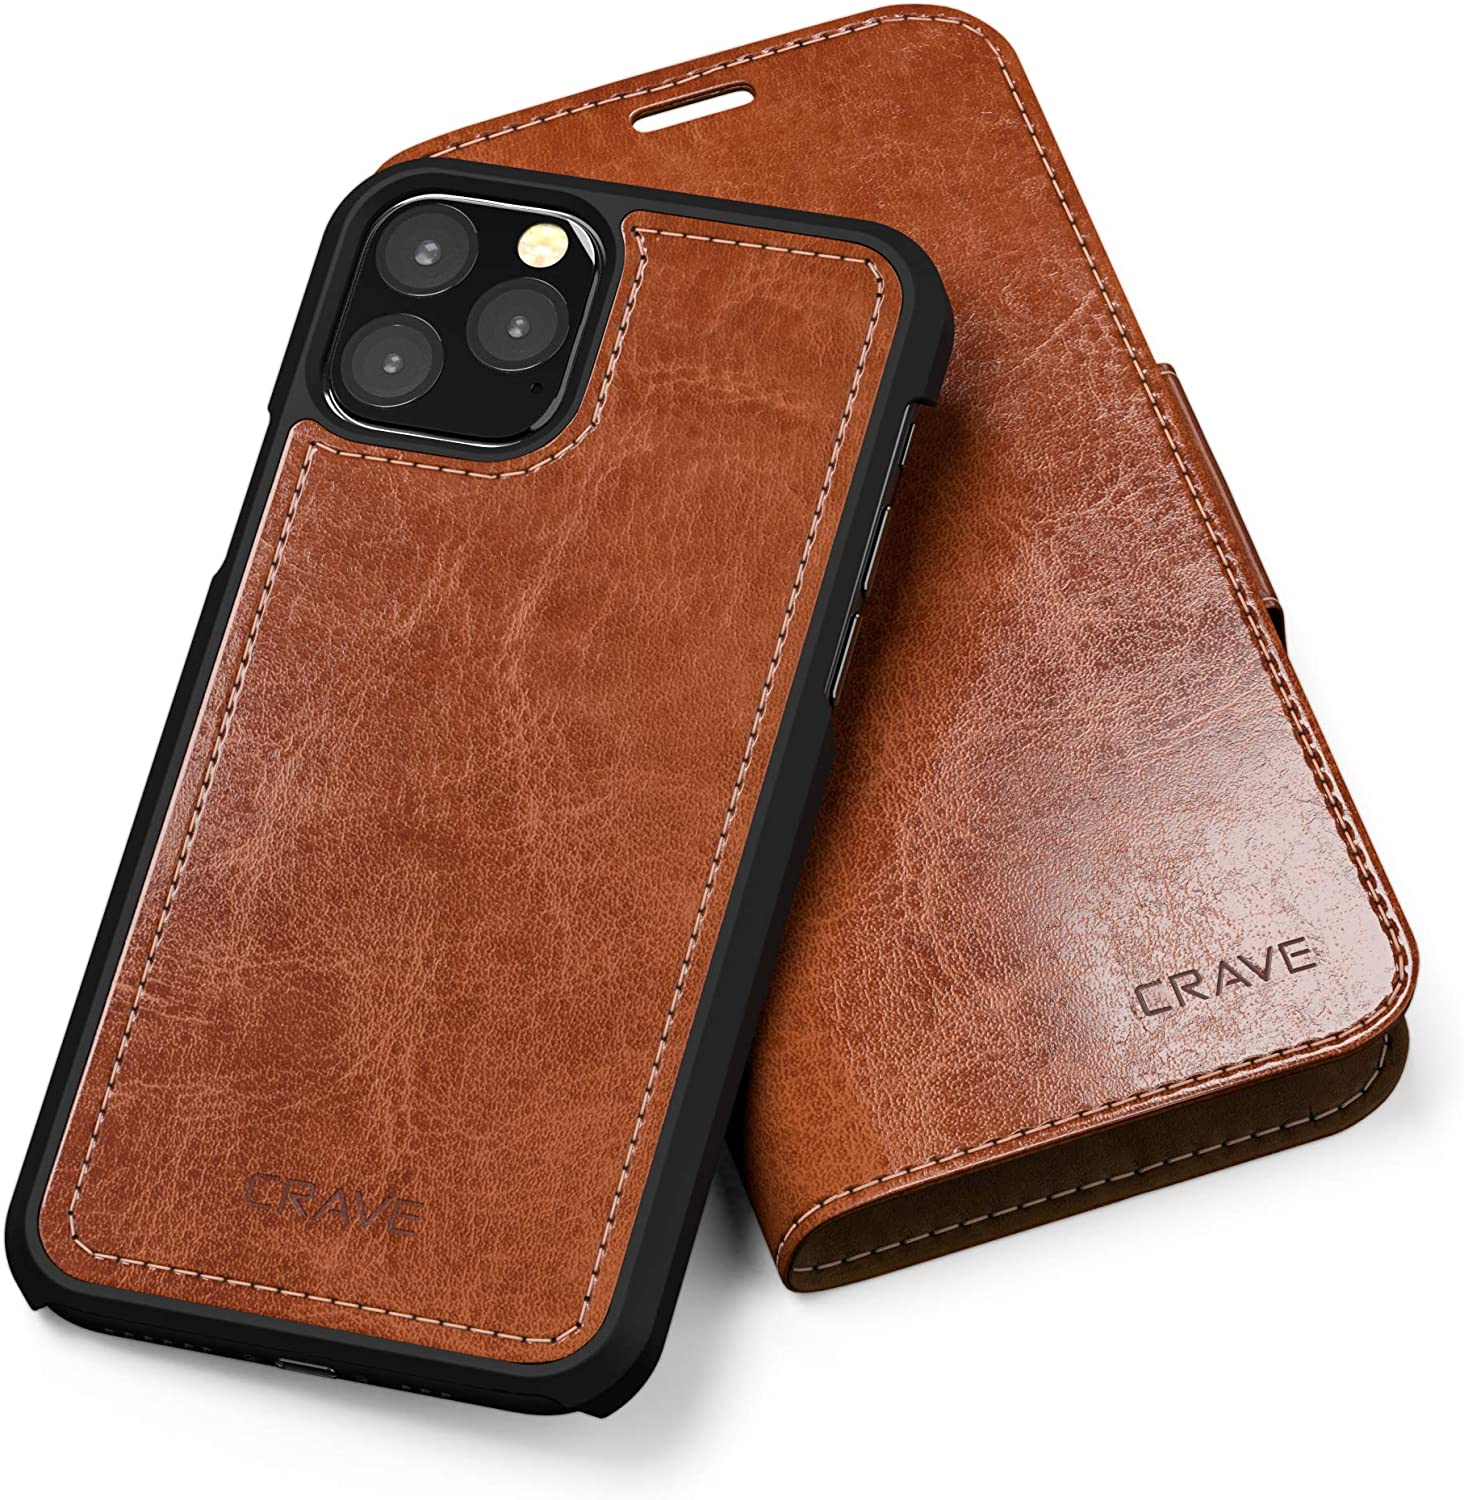 iPhone 11 Pro Leather Wallet Case, Crave Vegan Leather Guard Removable Case for Apple iPhone 11 Pro - Brown